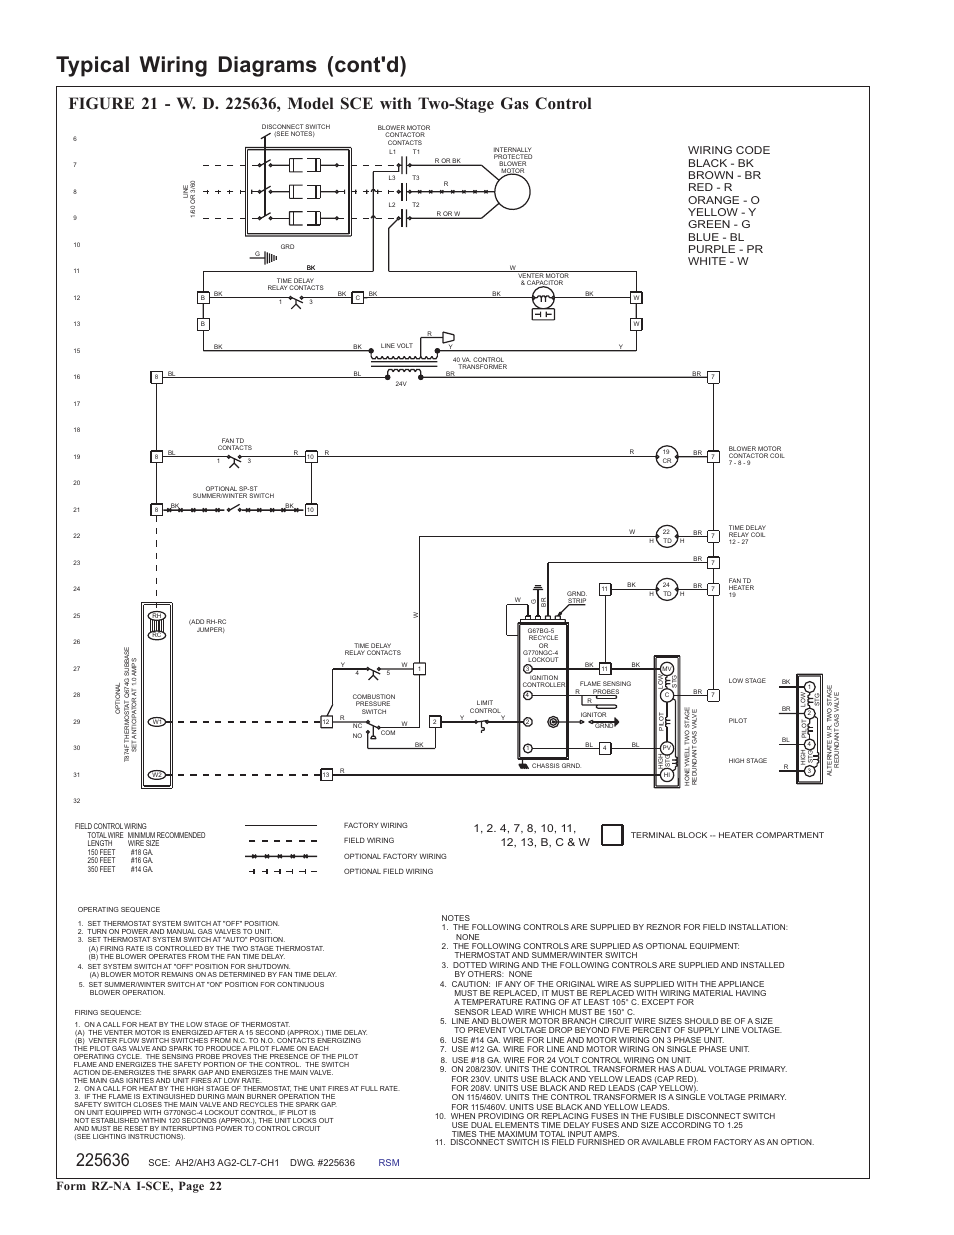 reznor sce unit installation manual page22 field controls power venter wiring diagram field wiring diagrams field controls ck63 wiring diagram at crackthecode.co